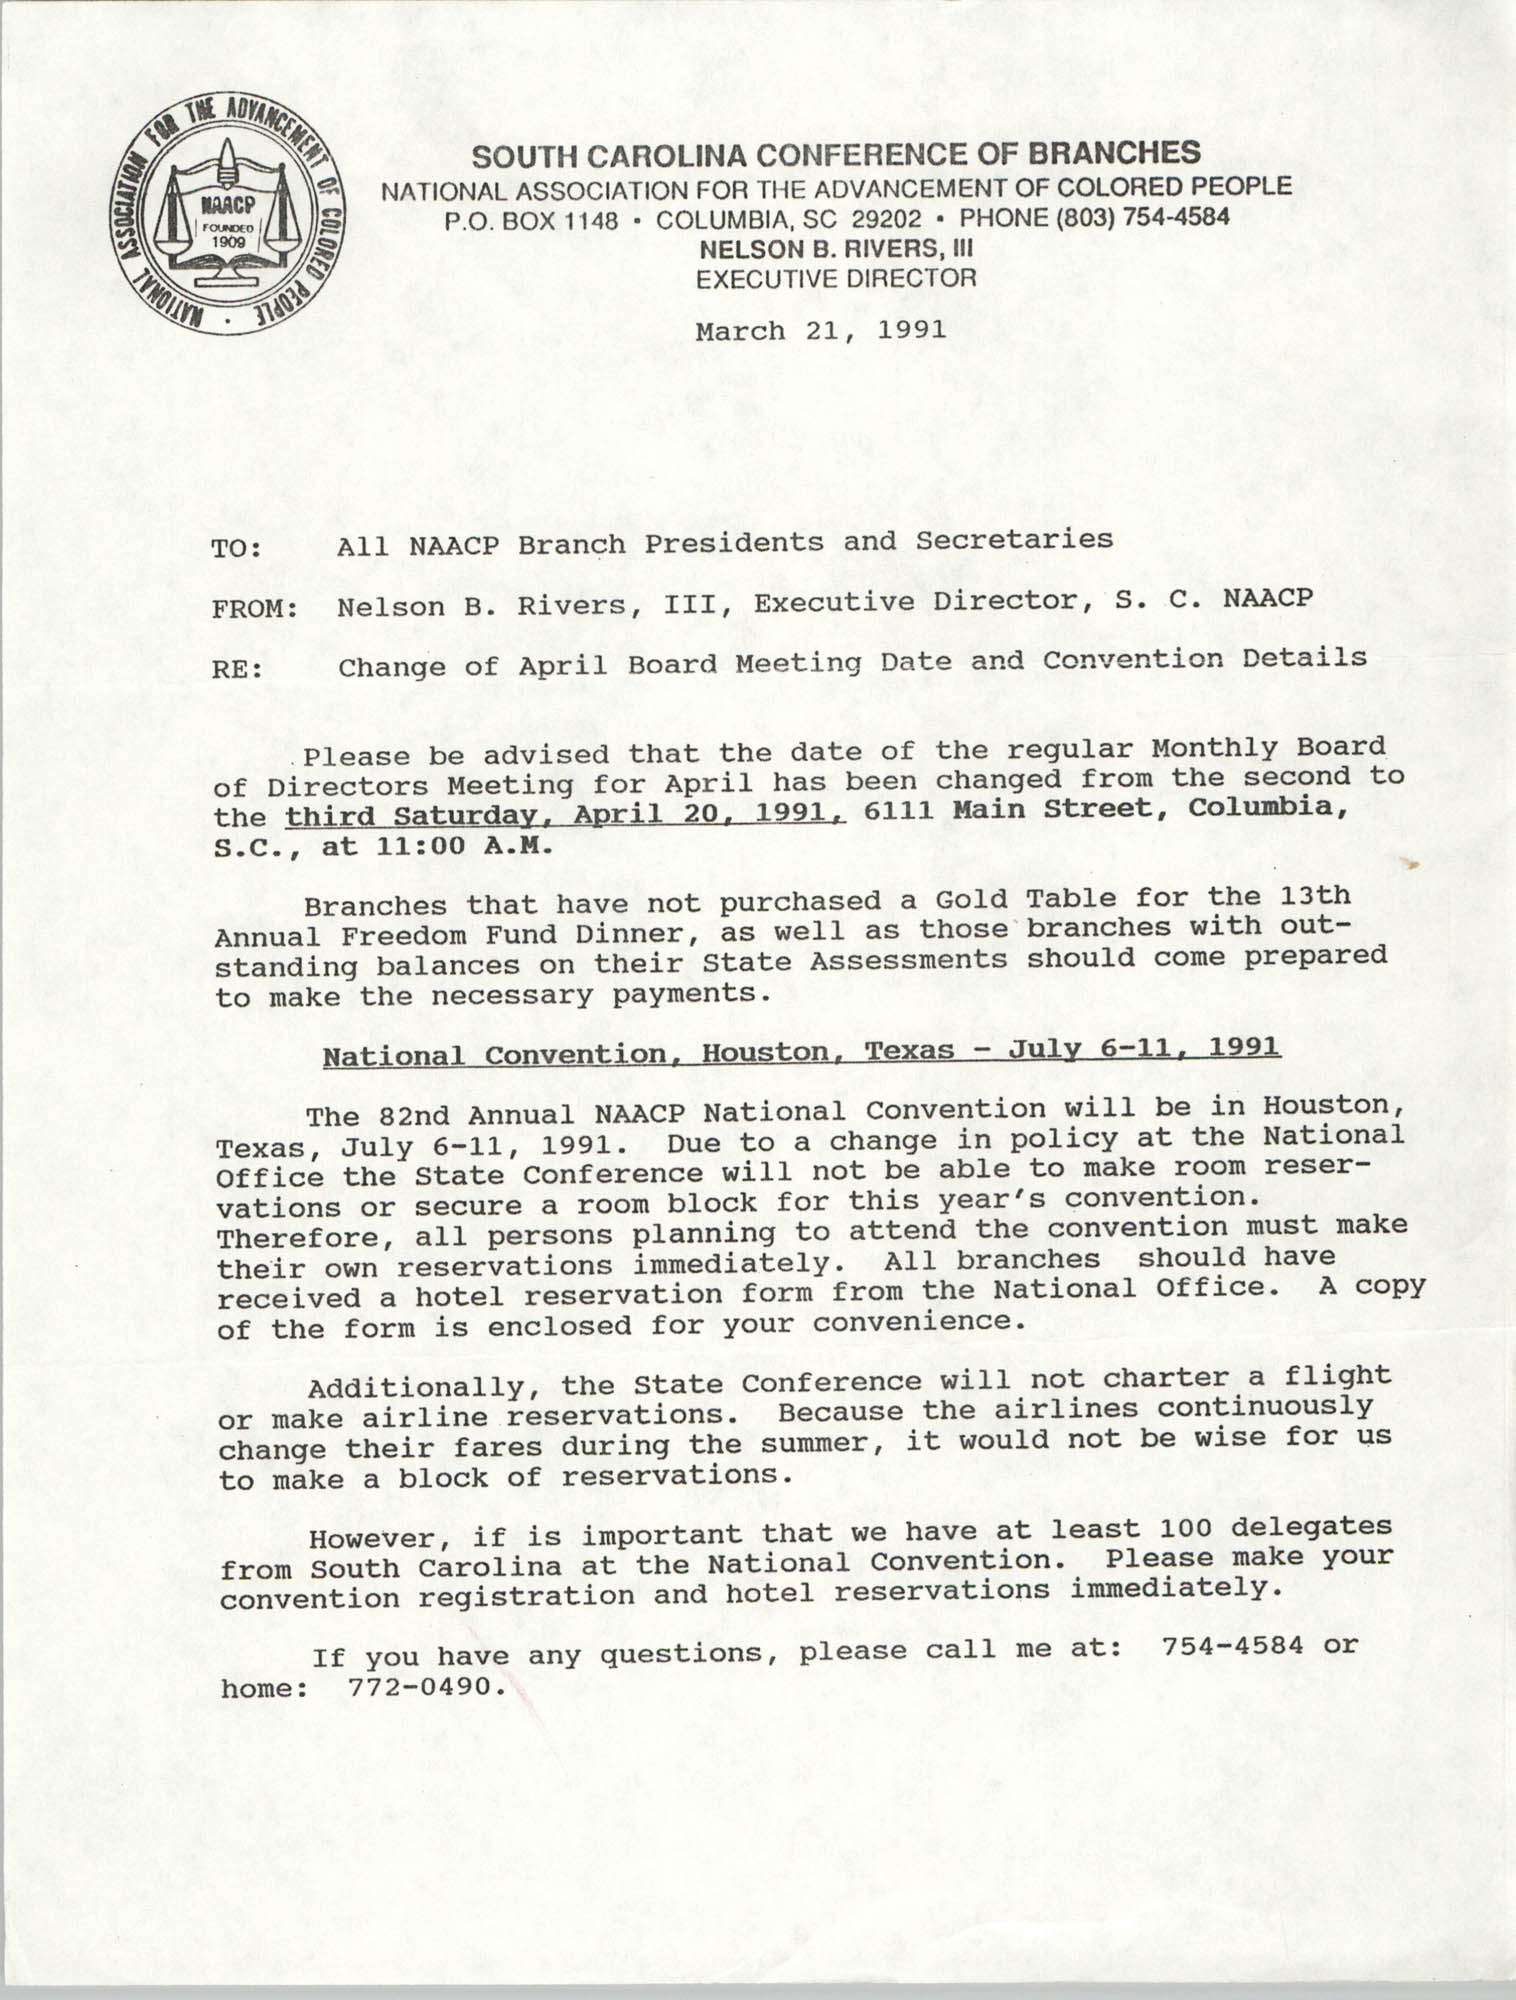 South Carolina Conference of Branches of the NAACP Memorandum, March 21, 1991